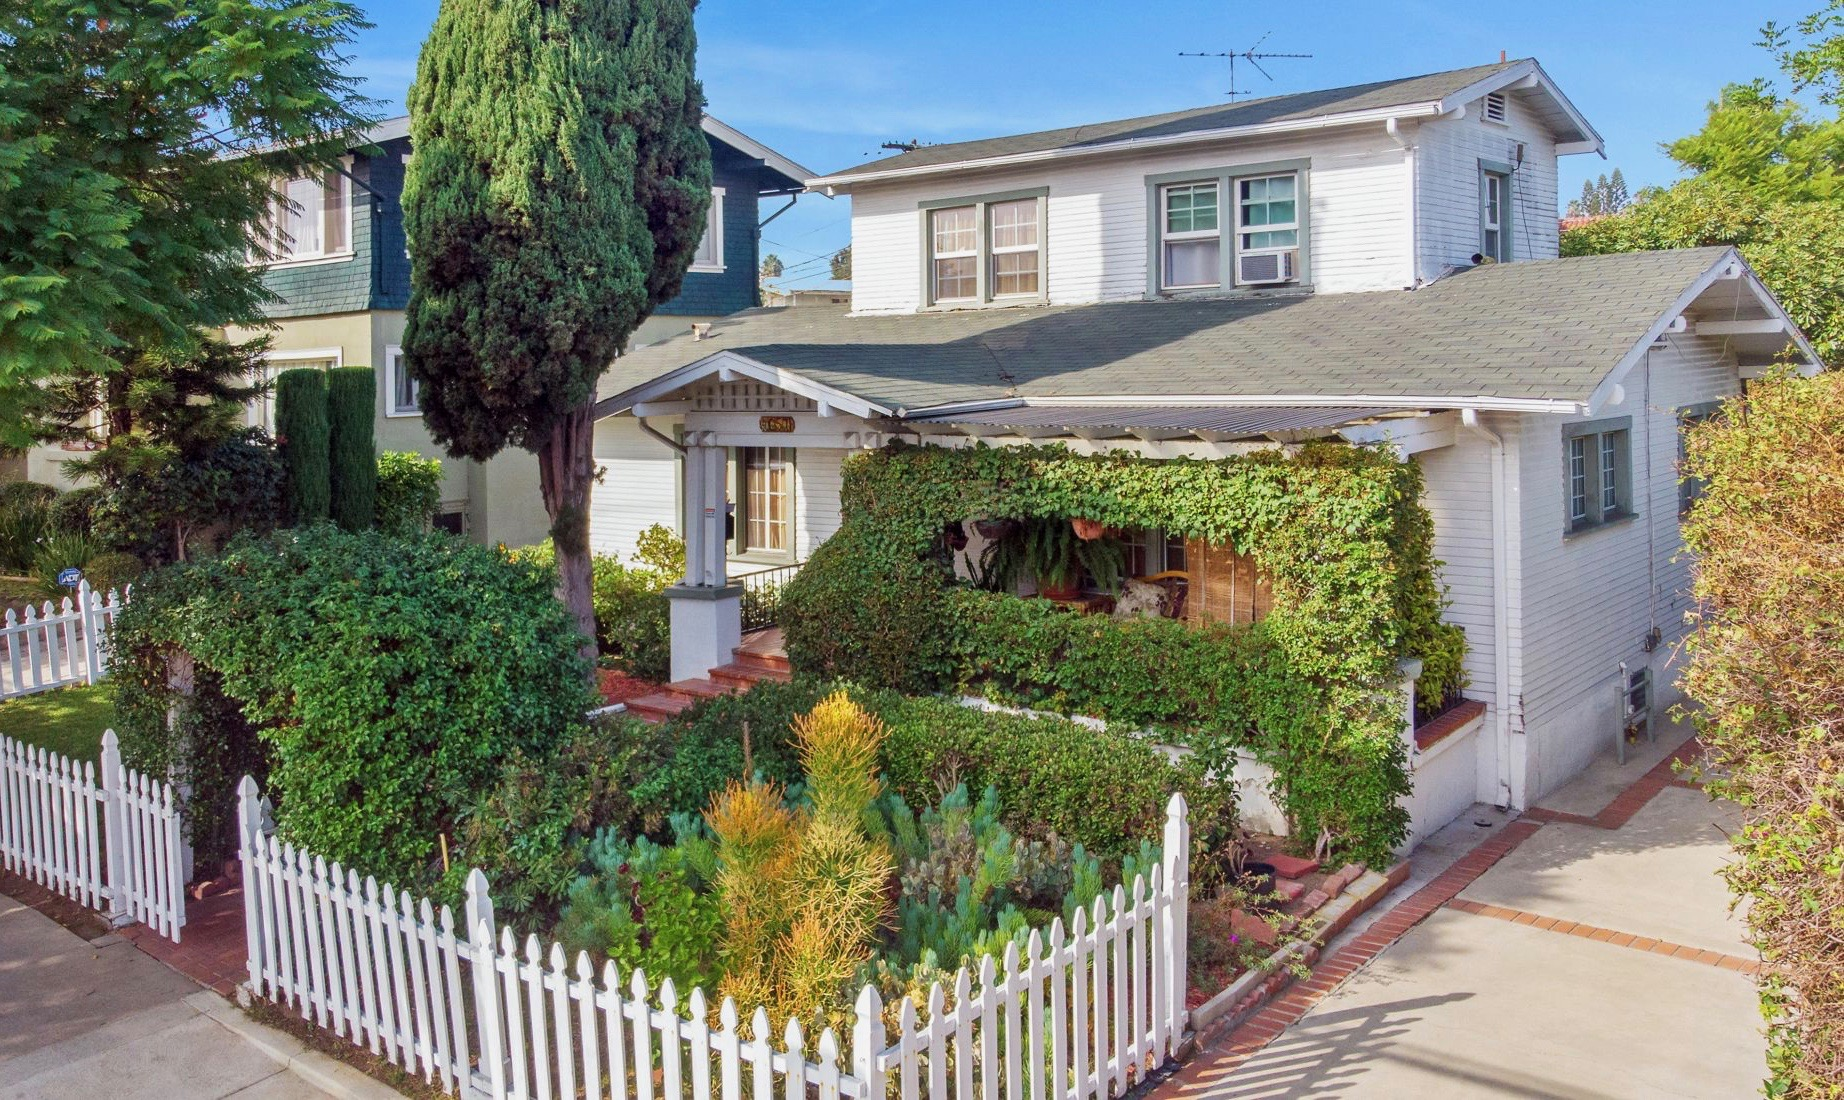 JUST LISTED: Craftsman Bungalow in Wilshire Park HPOZ